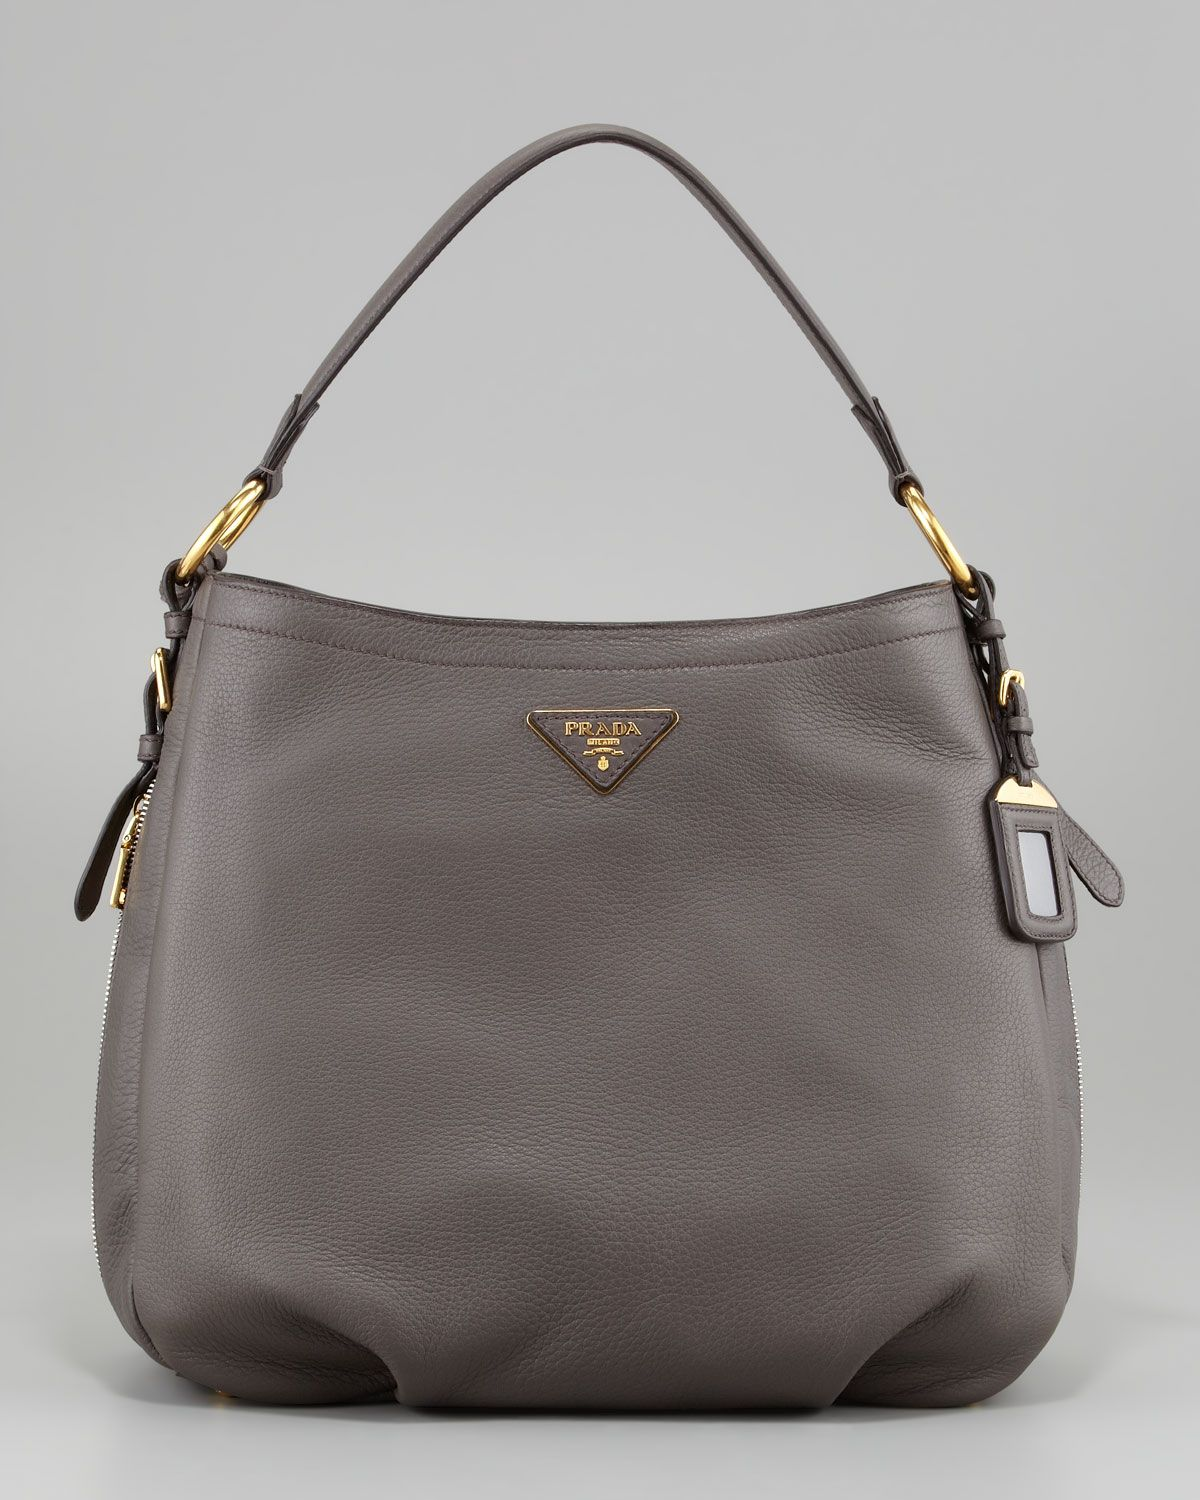 3e0129b6a67c Women's Gray Cervo Hobo Bag | My Stuff | Bags, Prada, Fashion